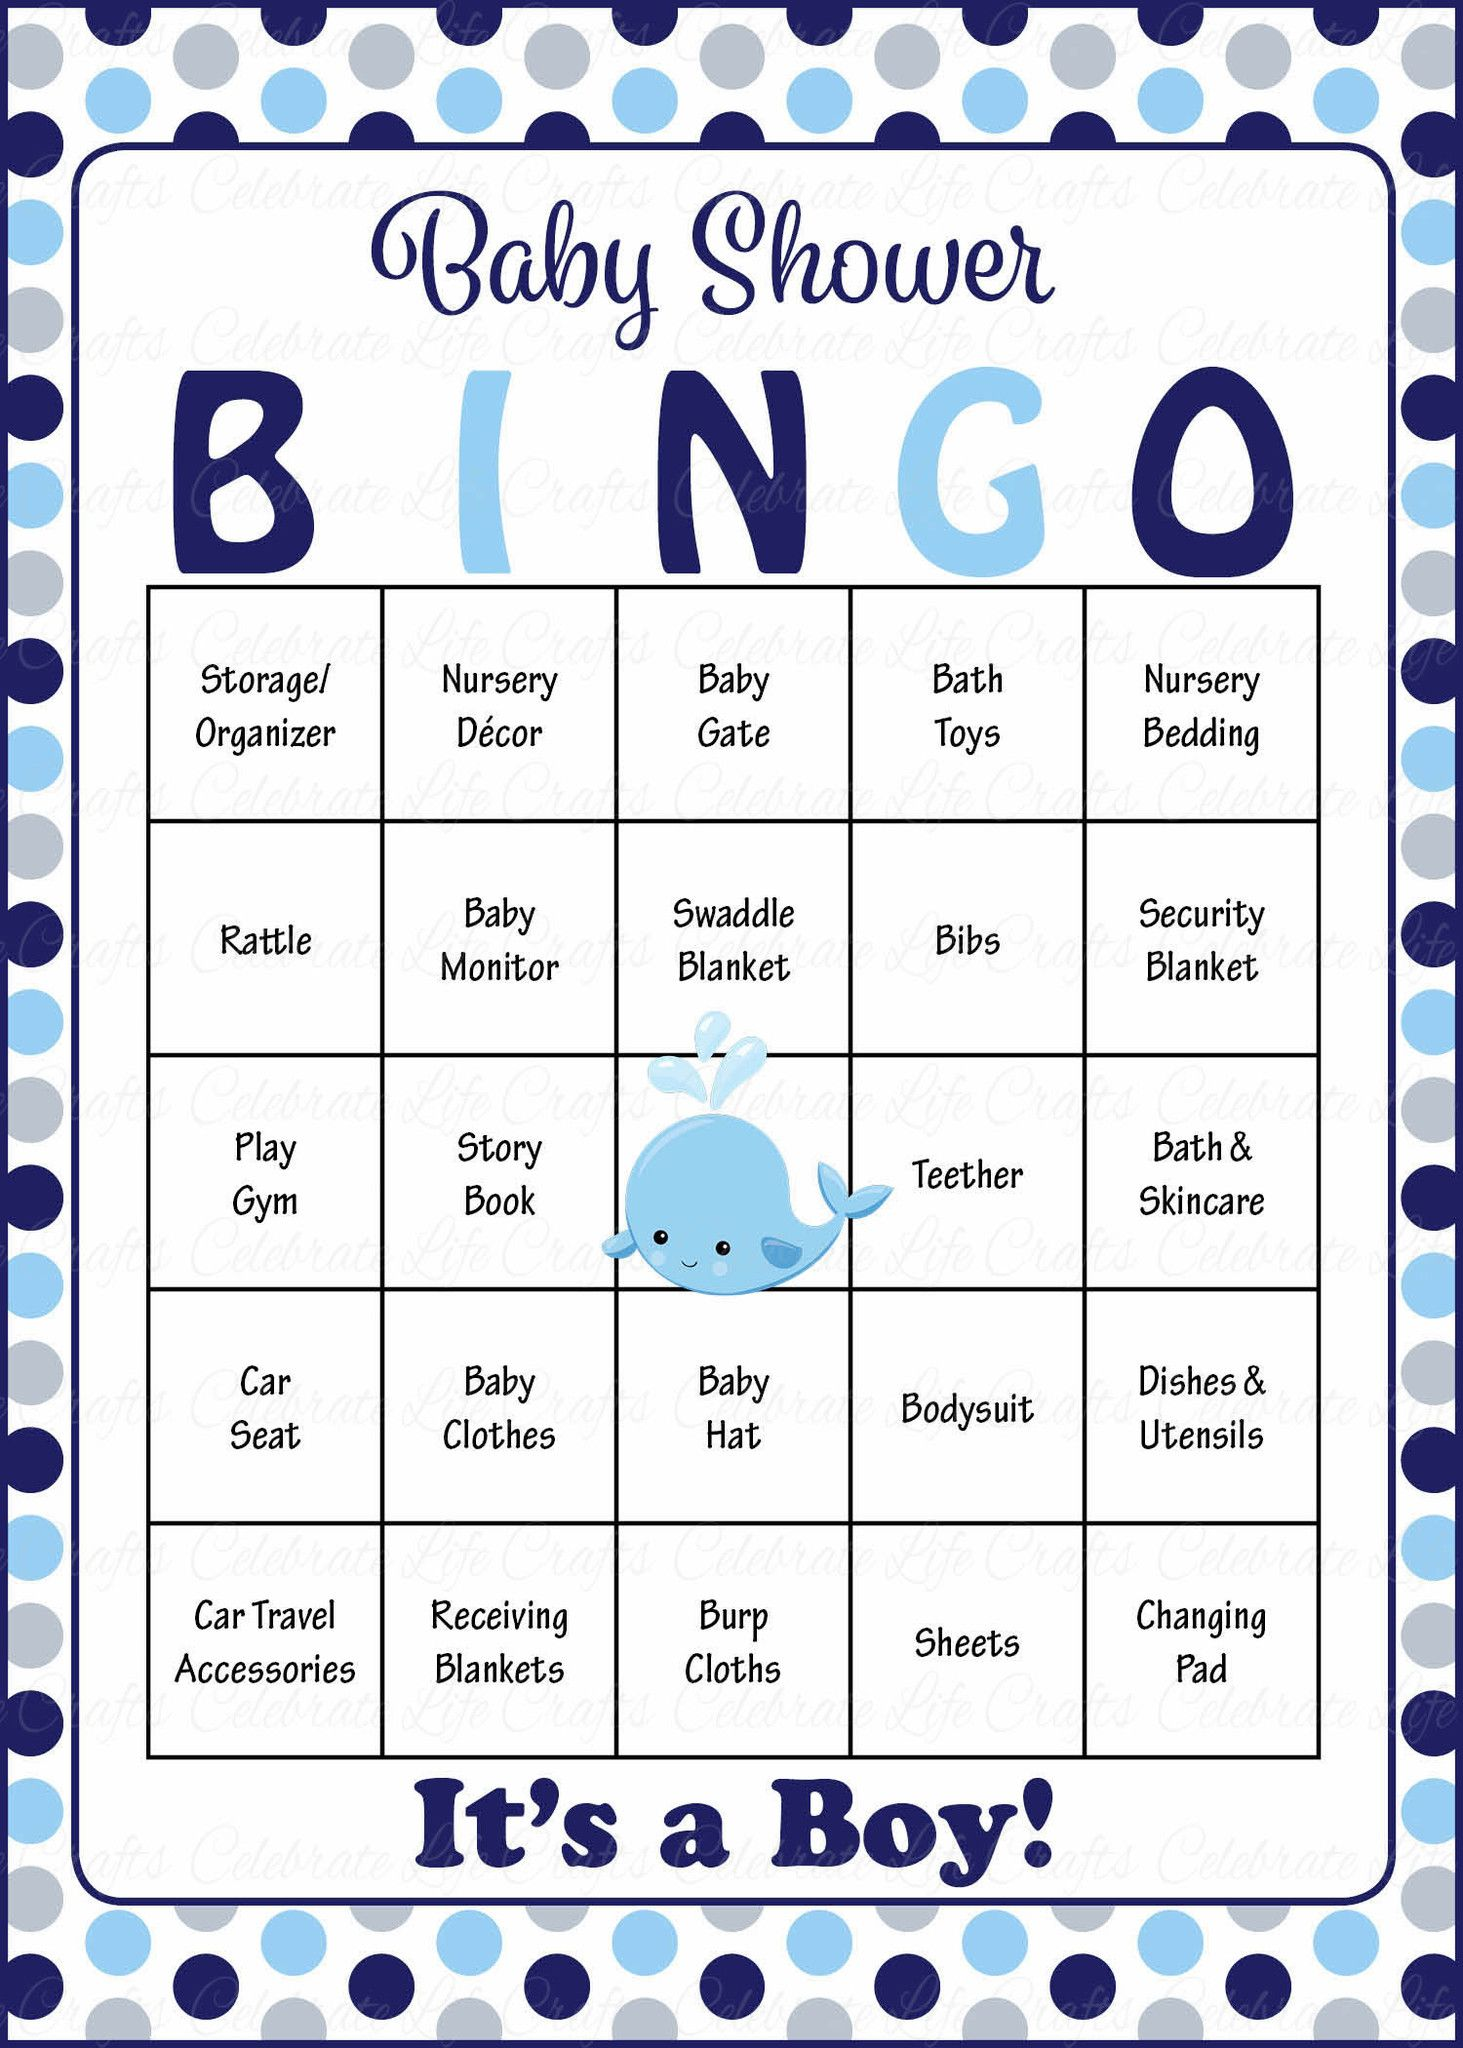 Whale Baby Bingo Cards - Printable Download - Prefilled - Baby Shower Game  for Boy - Navy Gray Polka Dots - B15007